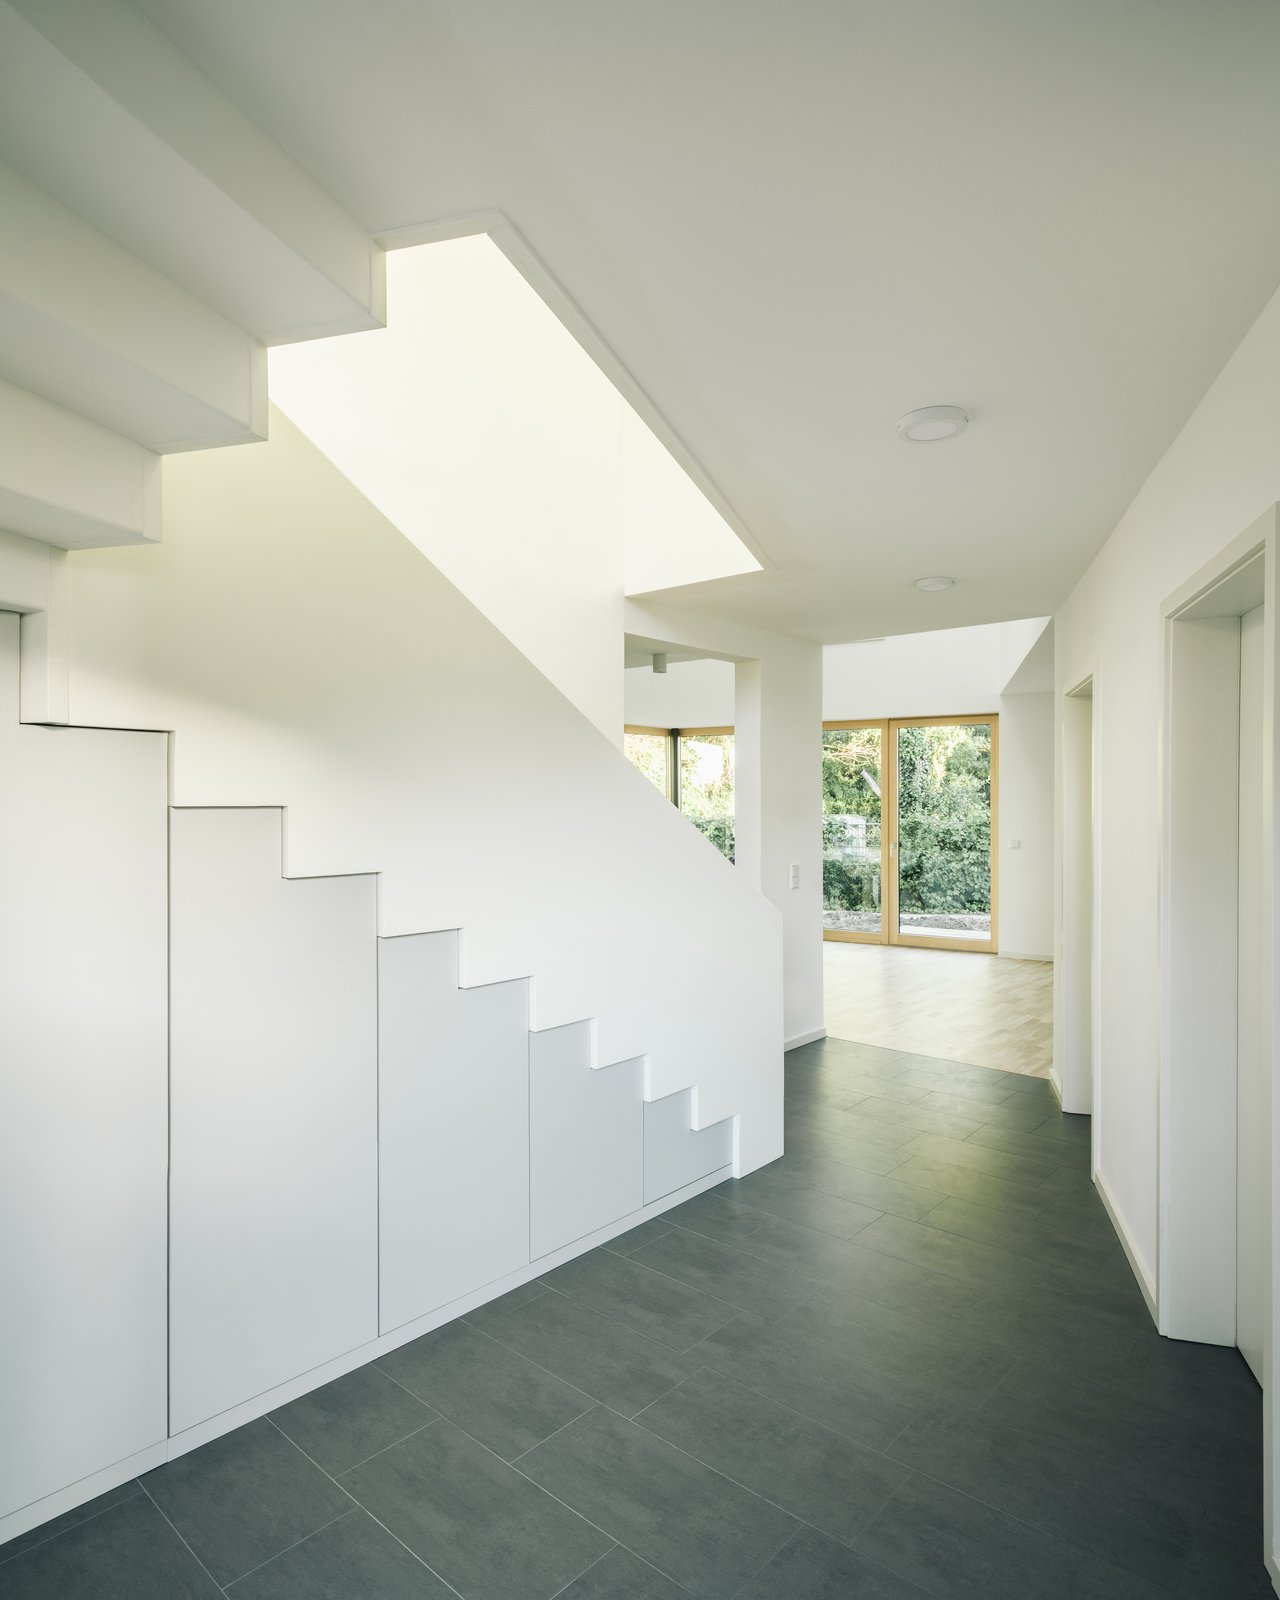 Hallway and Ceramic Tile Floor entrance area  Photo 5 of 5 in Top 5 Homes of the Week With Sublime Staircases from Haus P